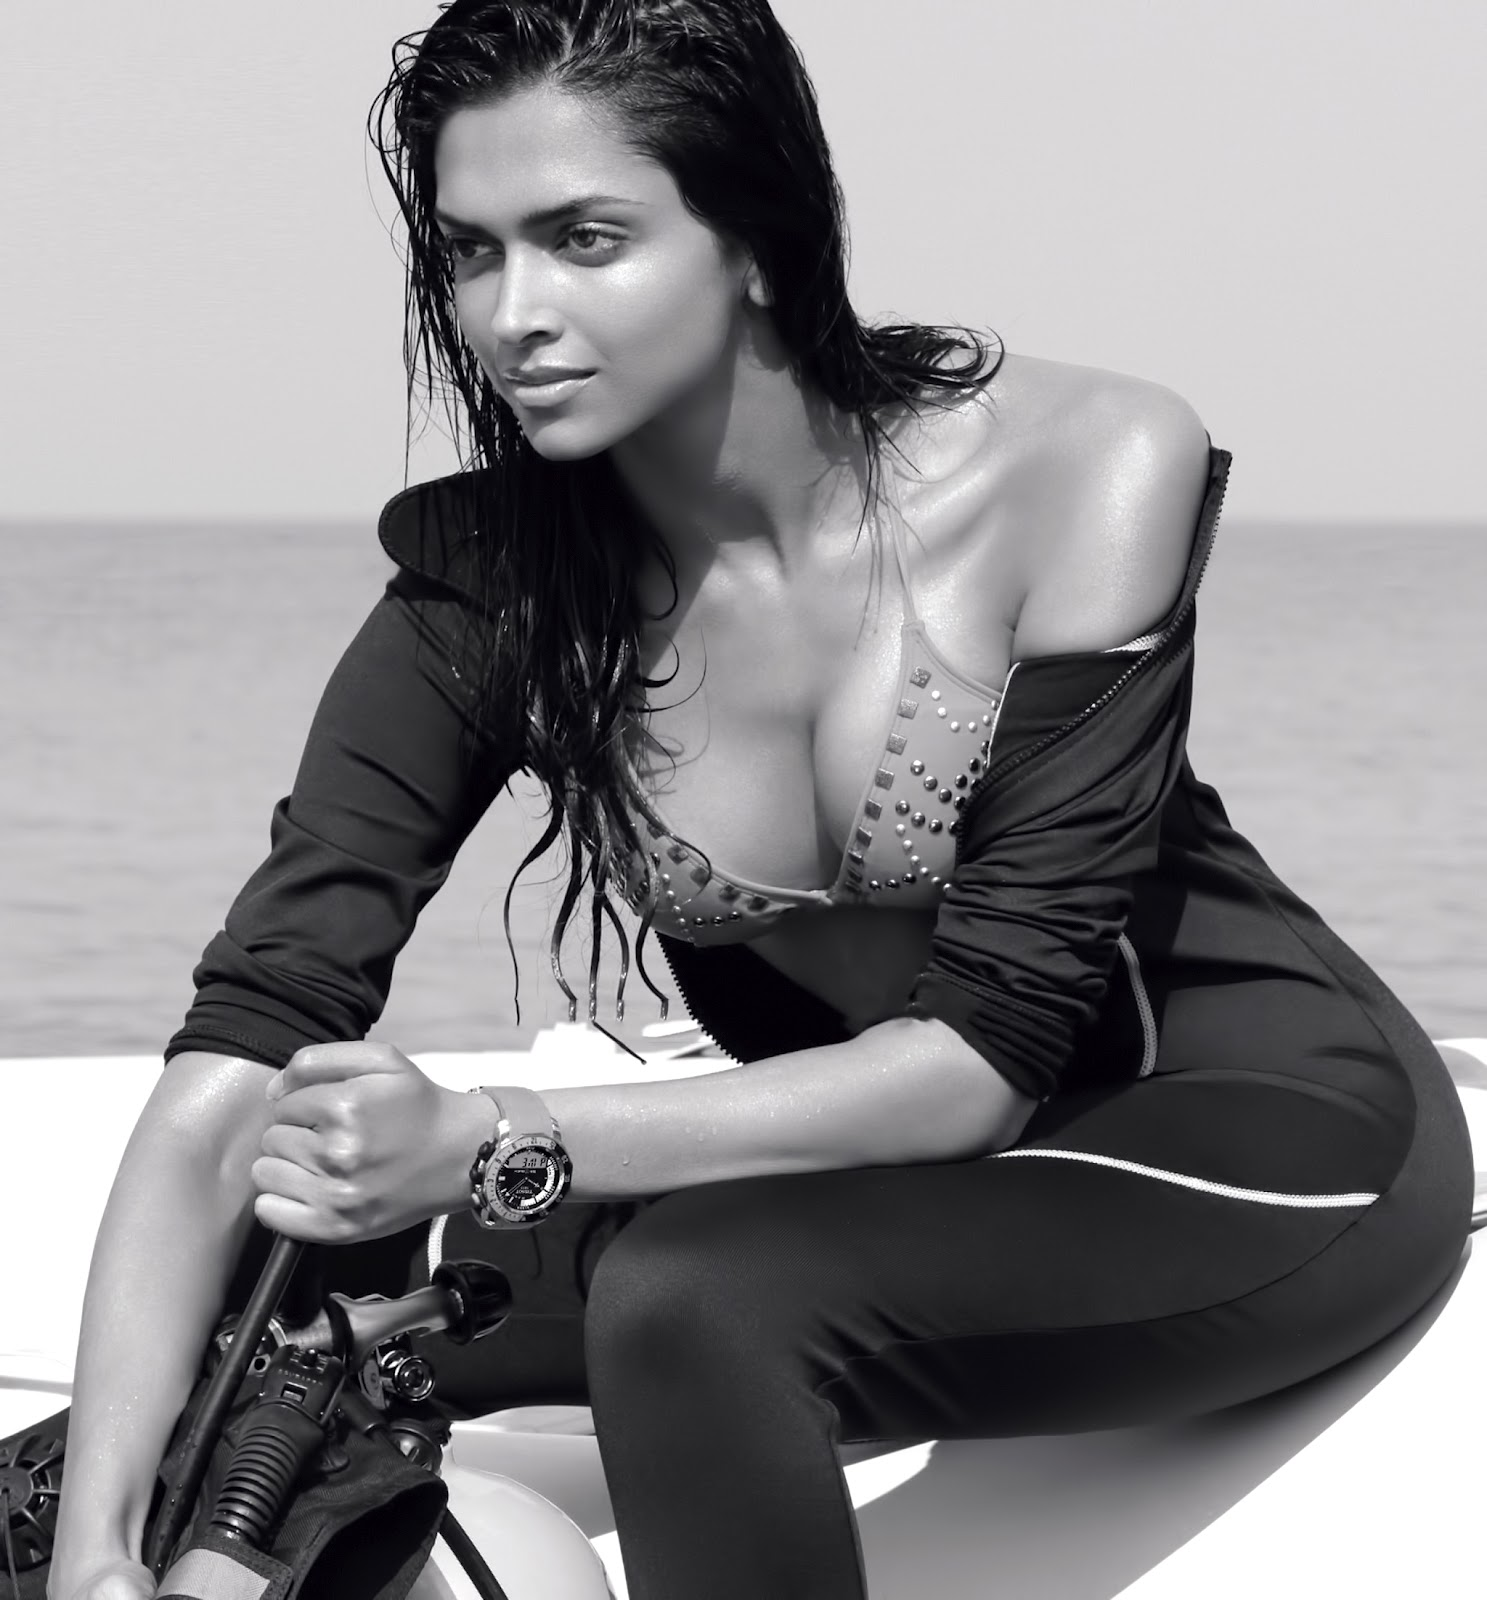 New Deepika Padukone Hot  Sexy Hd Wallpapers Pictures -1883